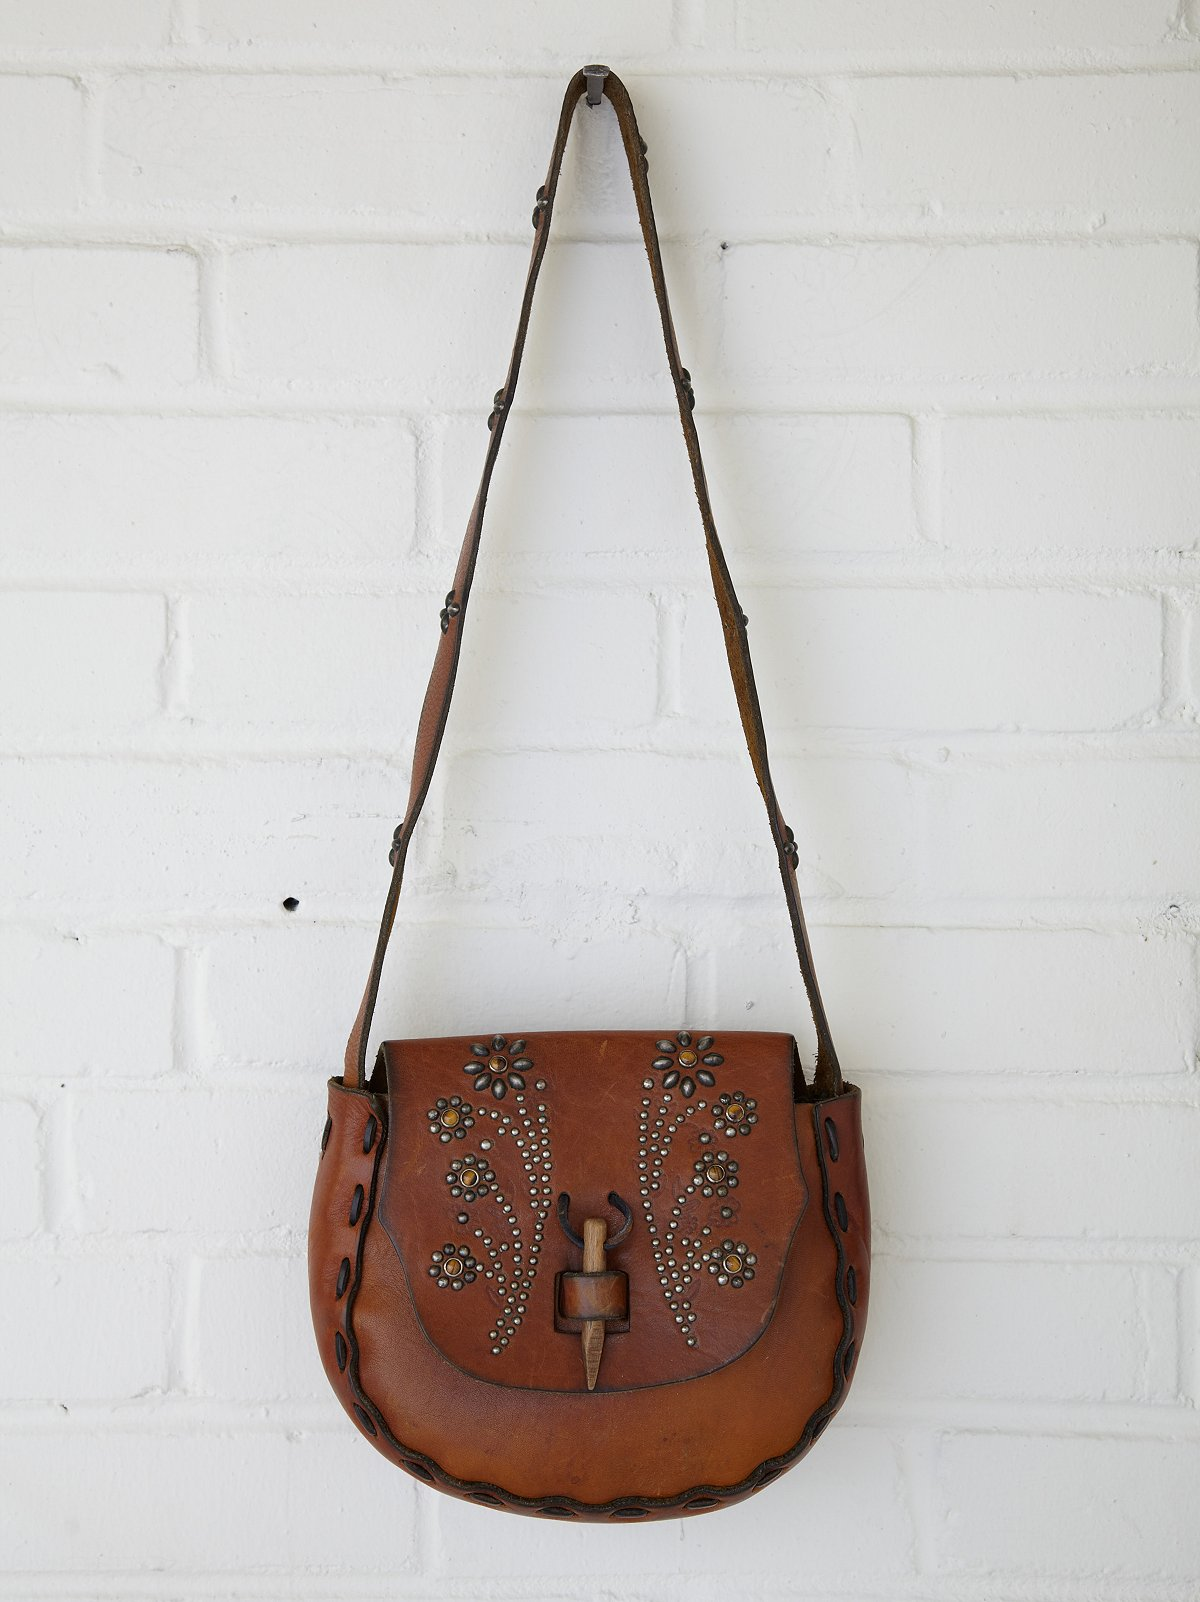 Vintage Tan Flower Stud Saddle Bag